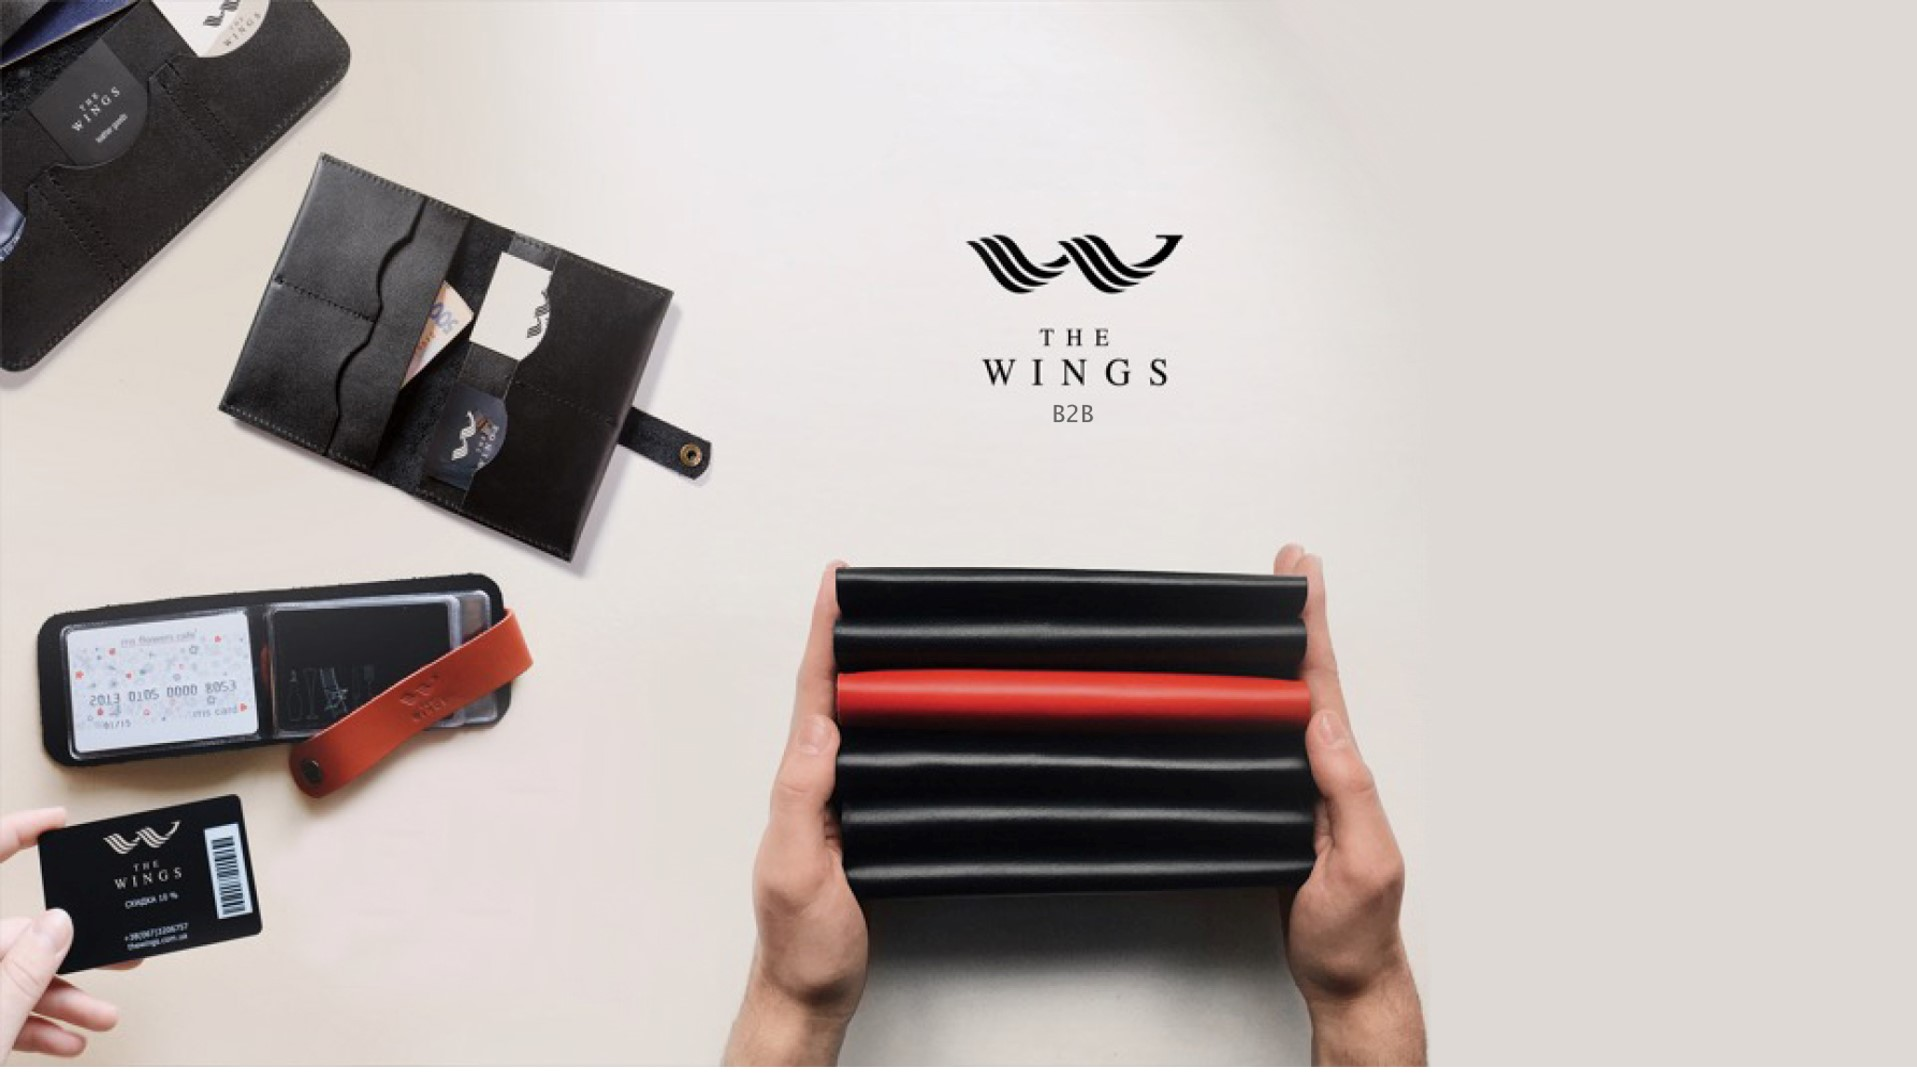 Thewings